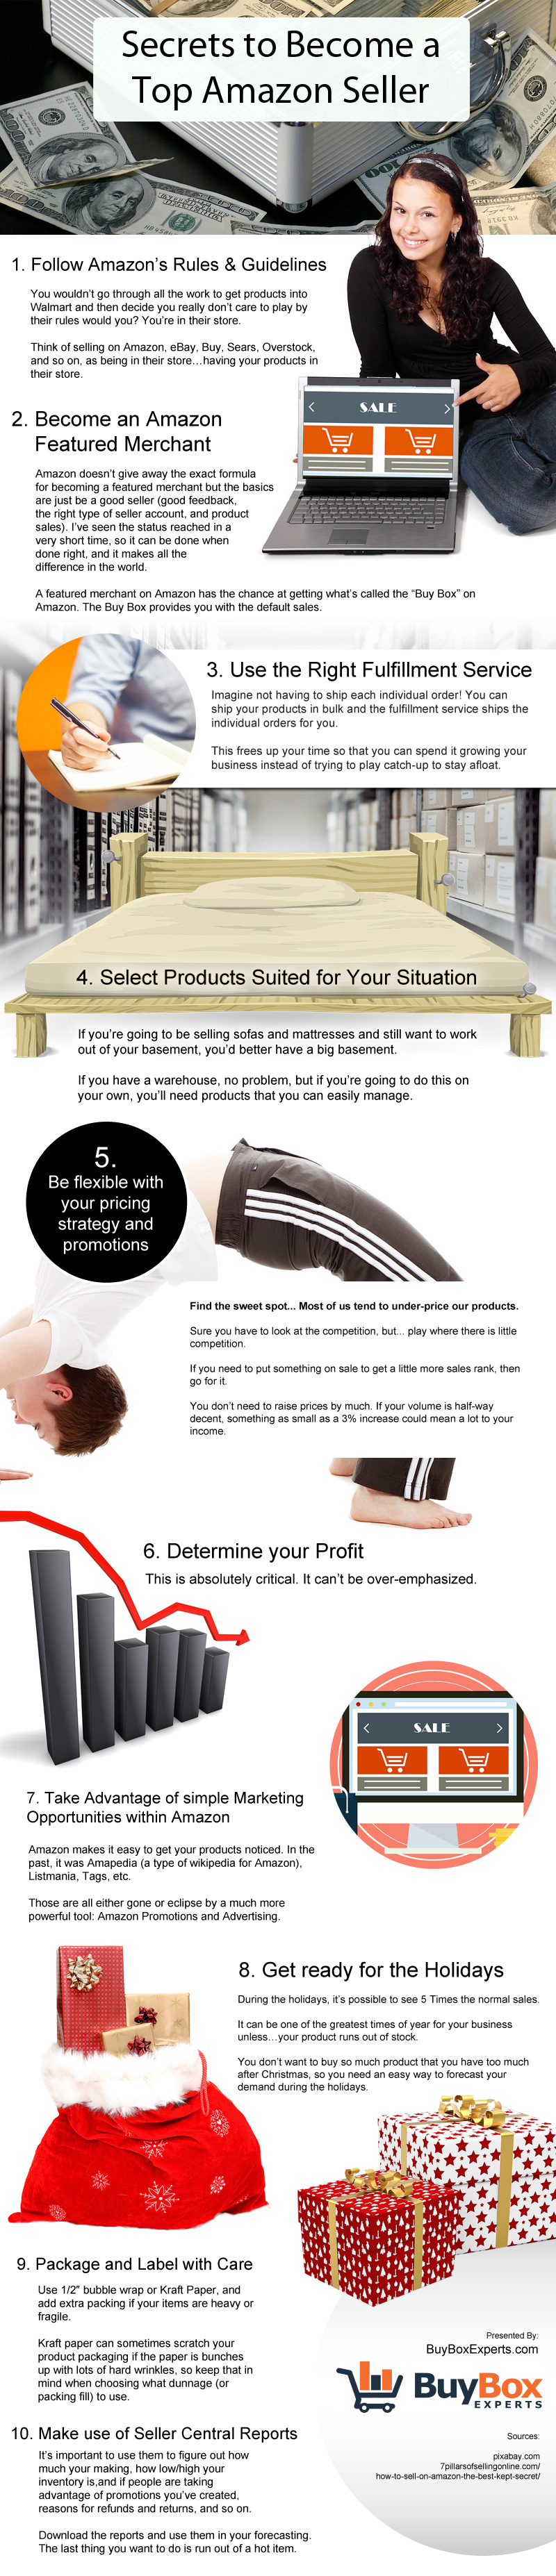 Secrets To Become A Top Amazon Seller Infographic Amazon Seller Infographic Things To Sell